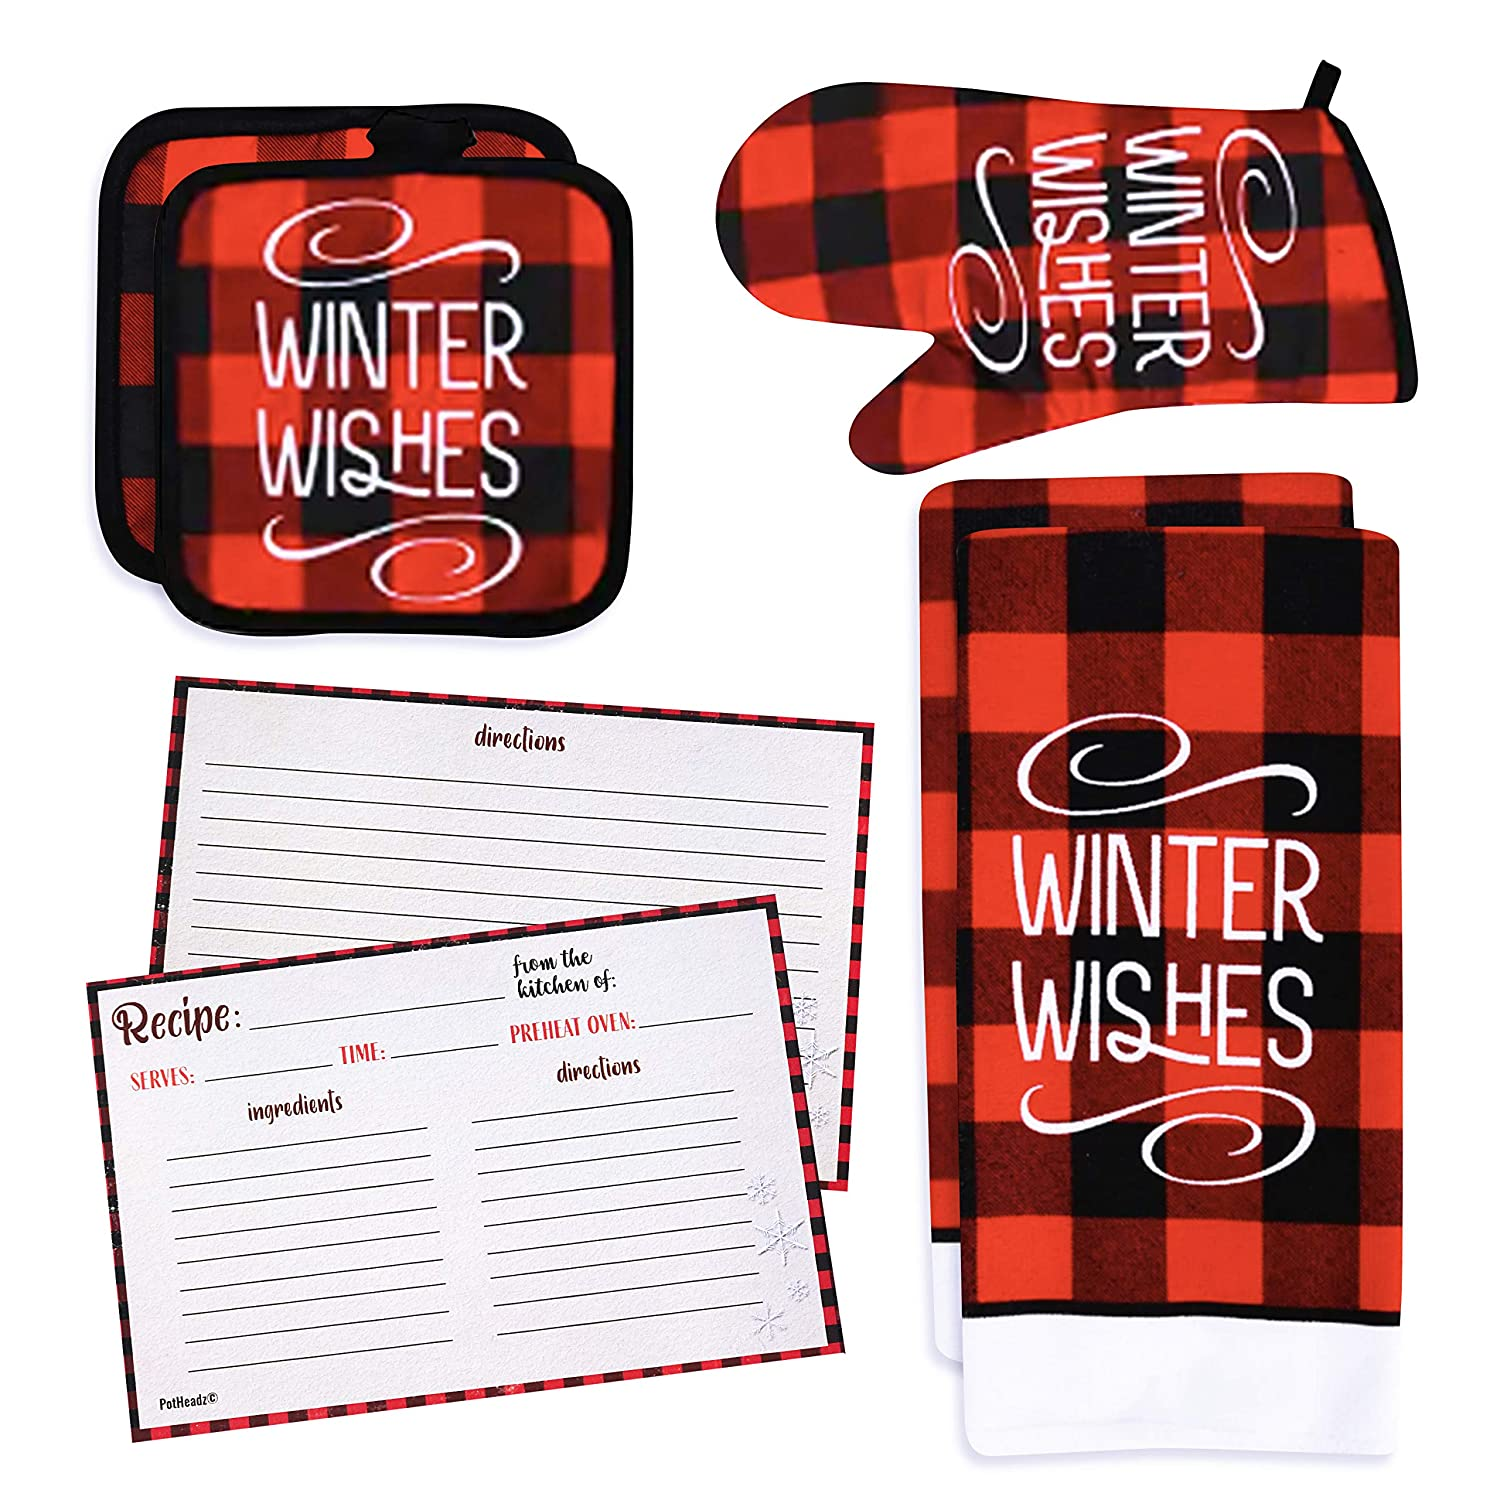 Buffalo Check Kitchen Towel Set with 2 Towels, Pot Holders, Oven Mitt Plus 4 x 6 Double Sided Recipe Cards (Set of 25) | Modern Farmhouse Decor Set (Winter Wishes)